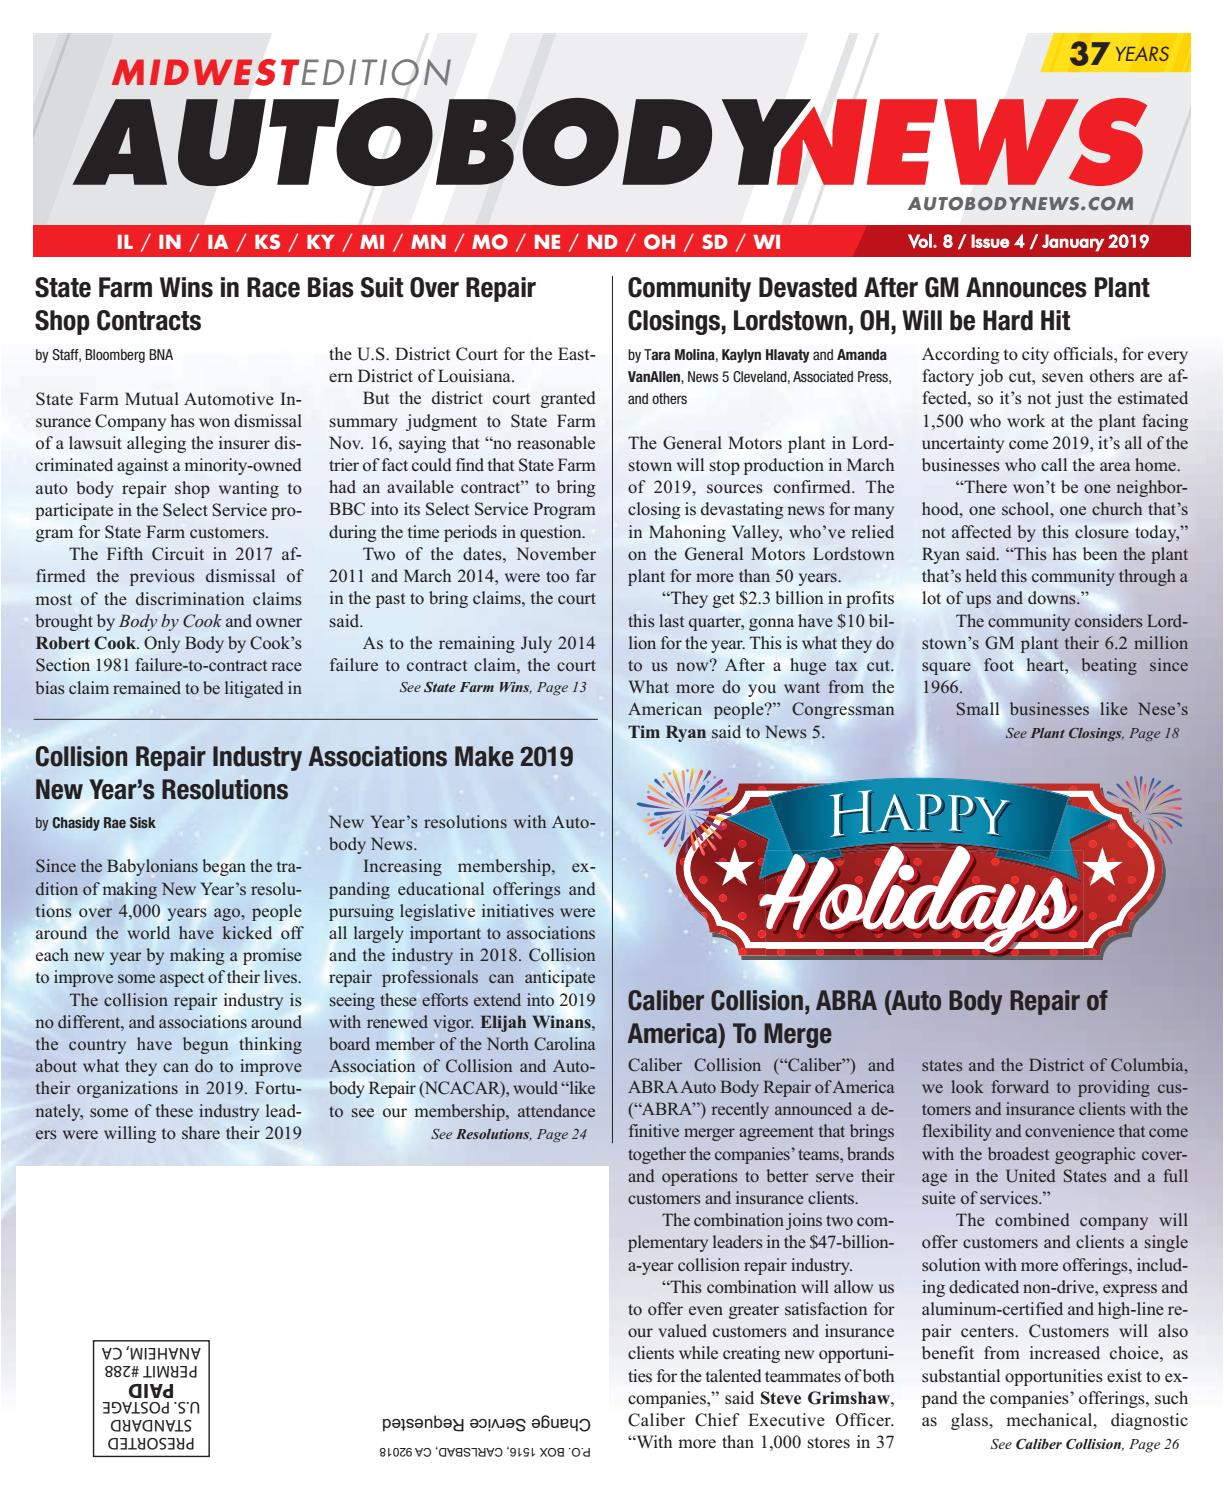 Midwest Rug Co Springfield Mo January 2019 Midwest Edition by Autobody News issuu